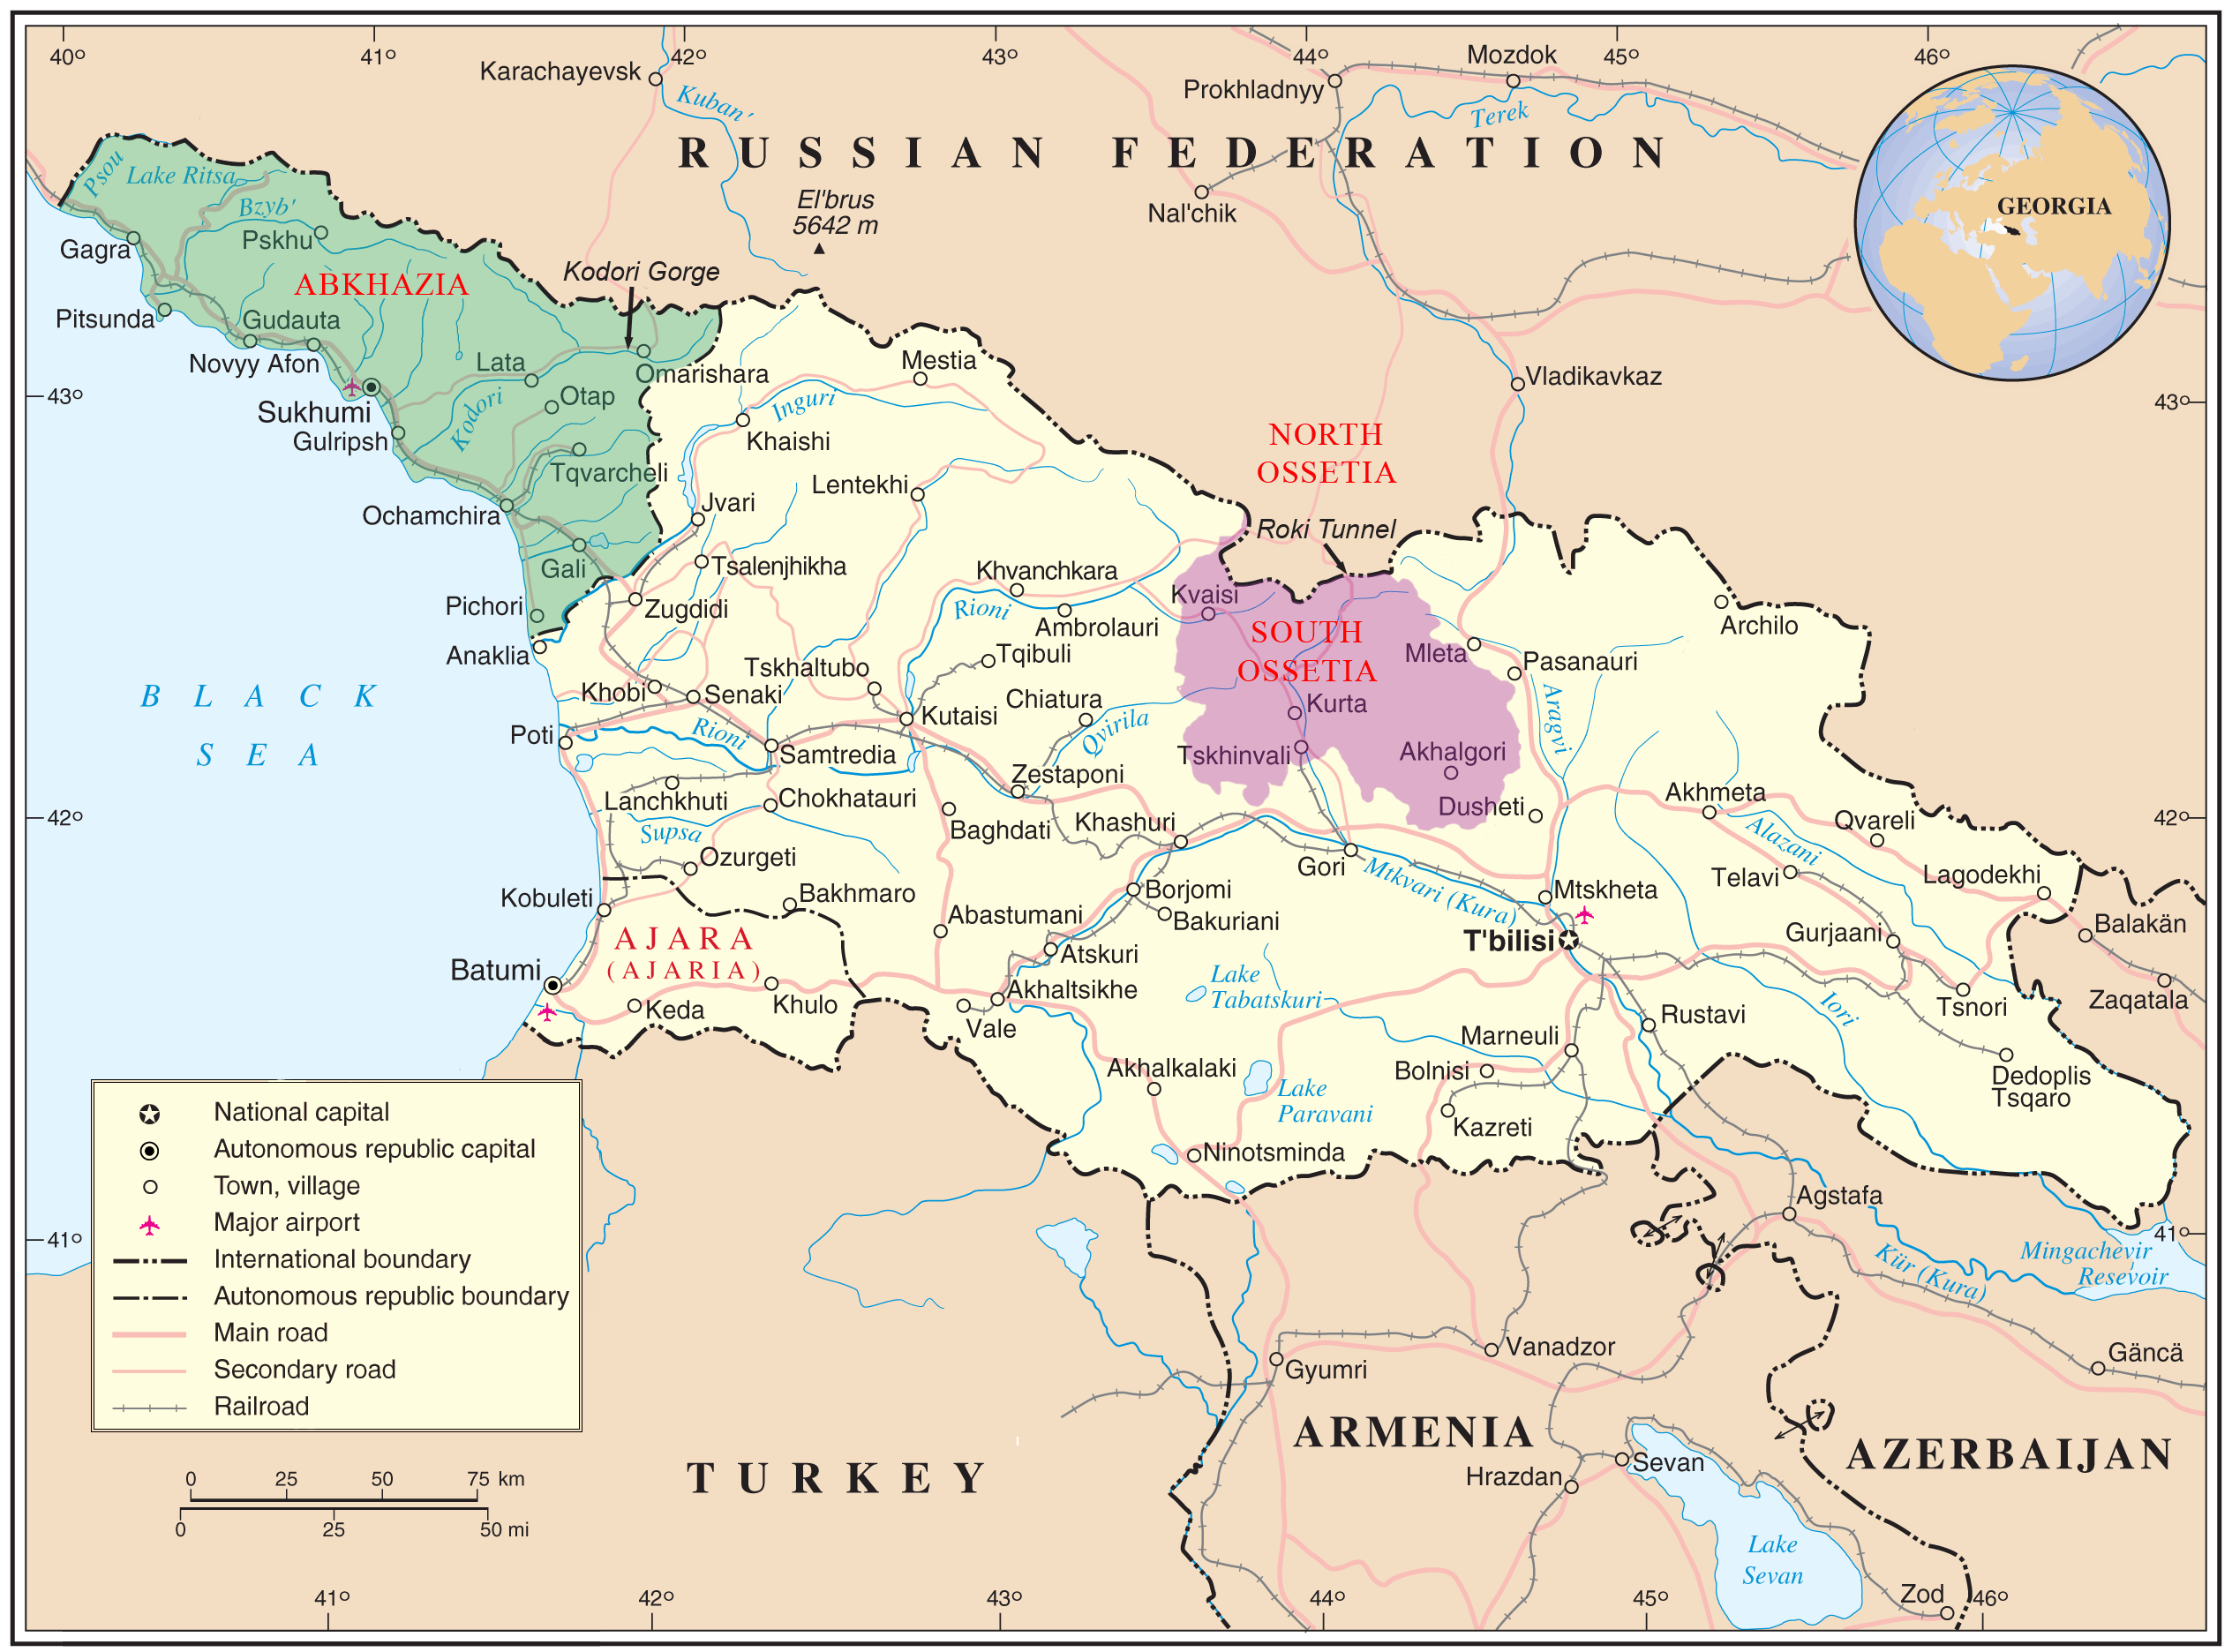 Map of Georgia highlighting Abkhazia green and South Ossetia